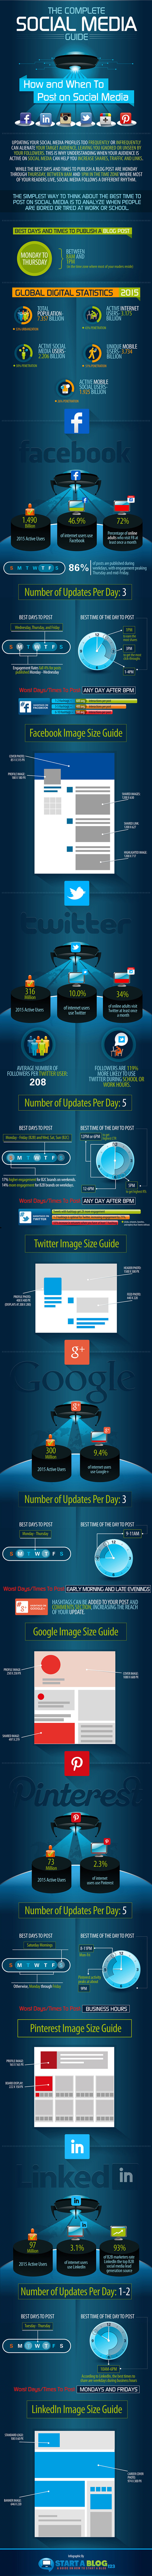 Interesting Infographics: When and How to Update Your Social Media